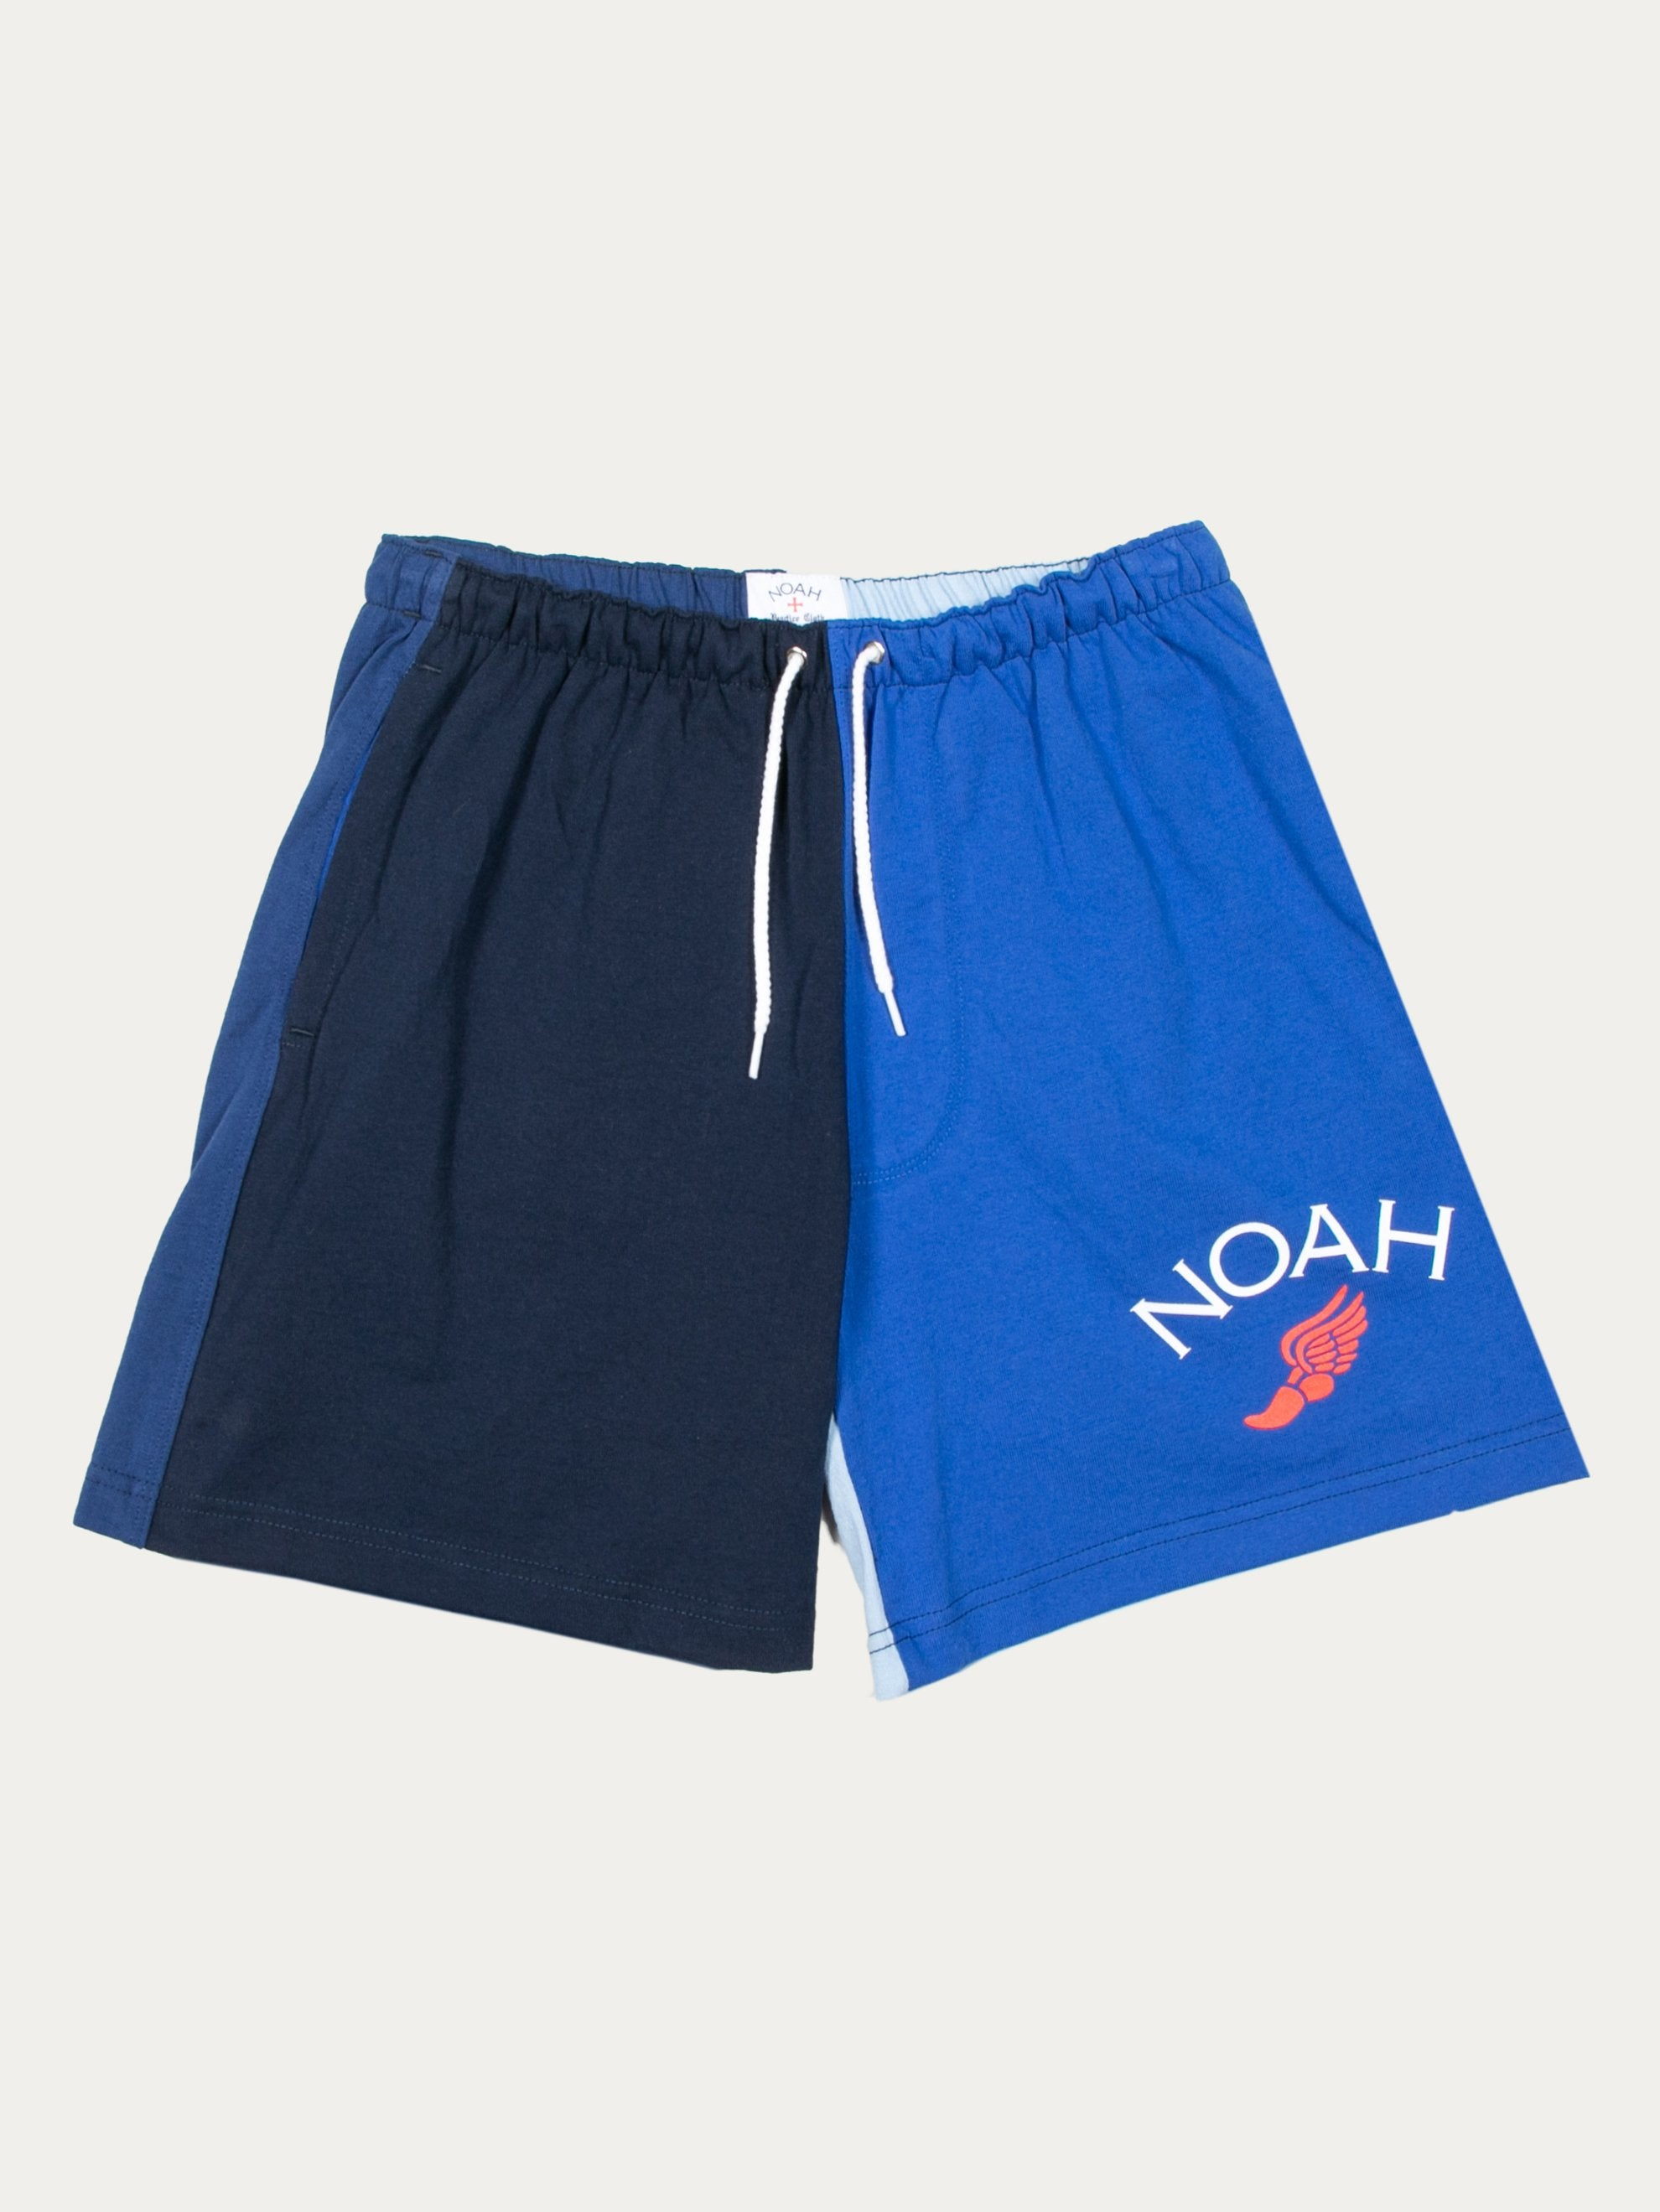 Rugby Cloth Shorts